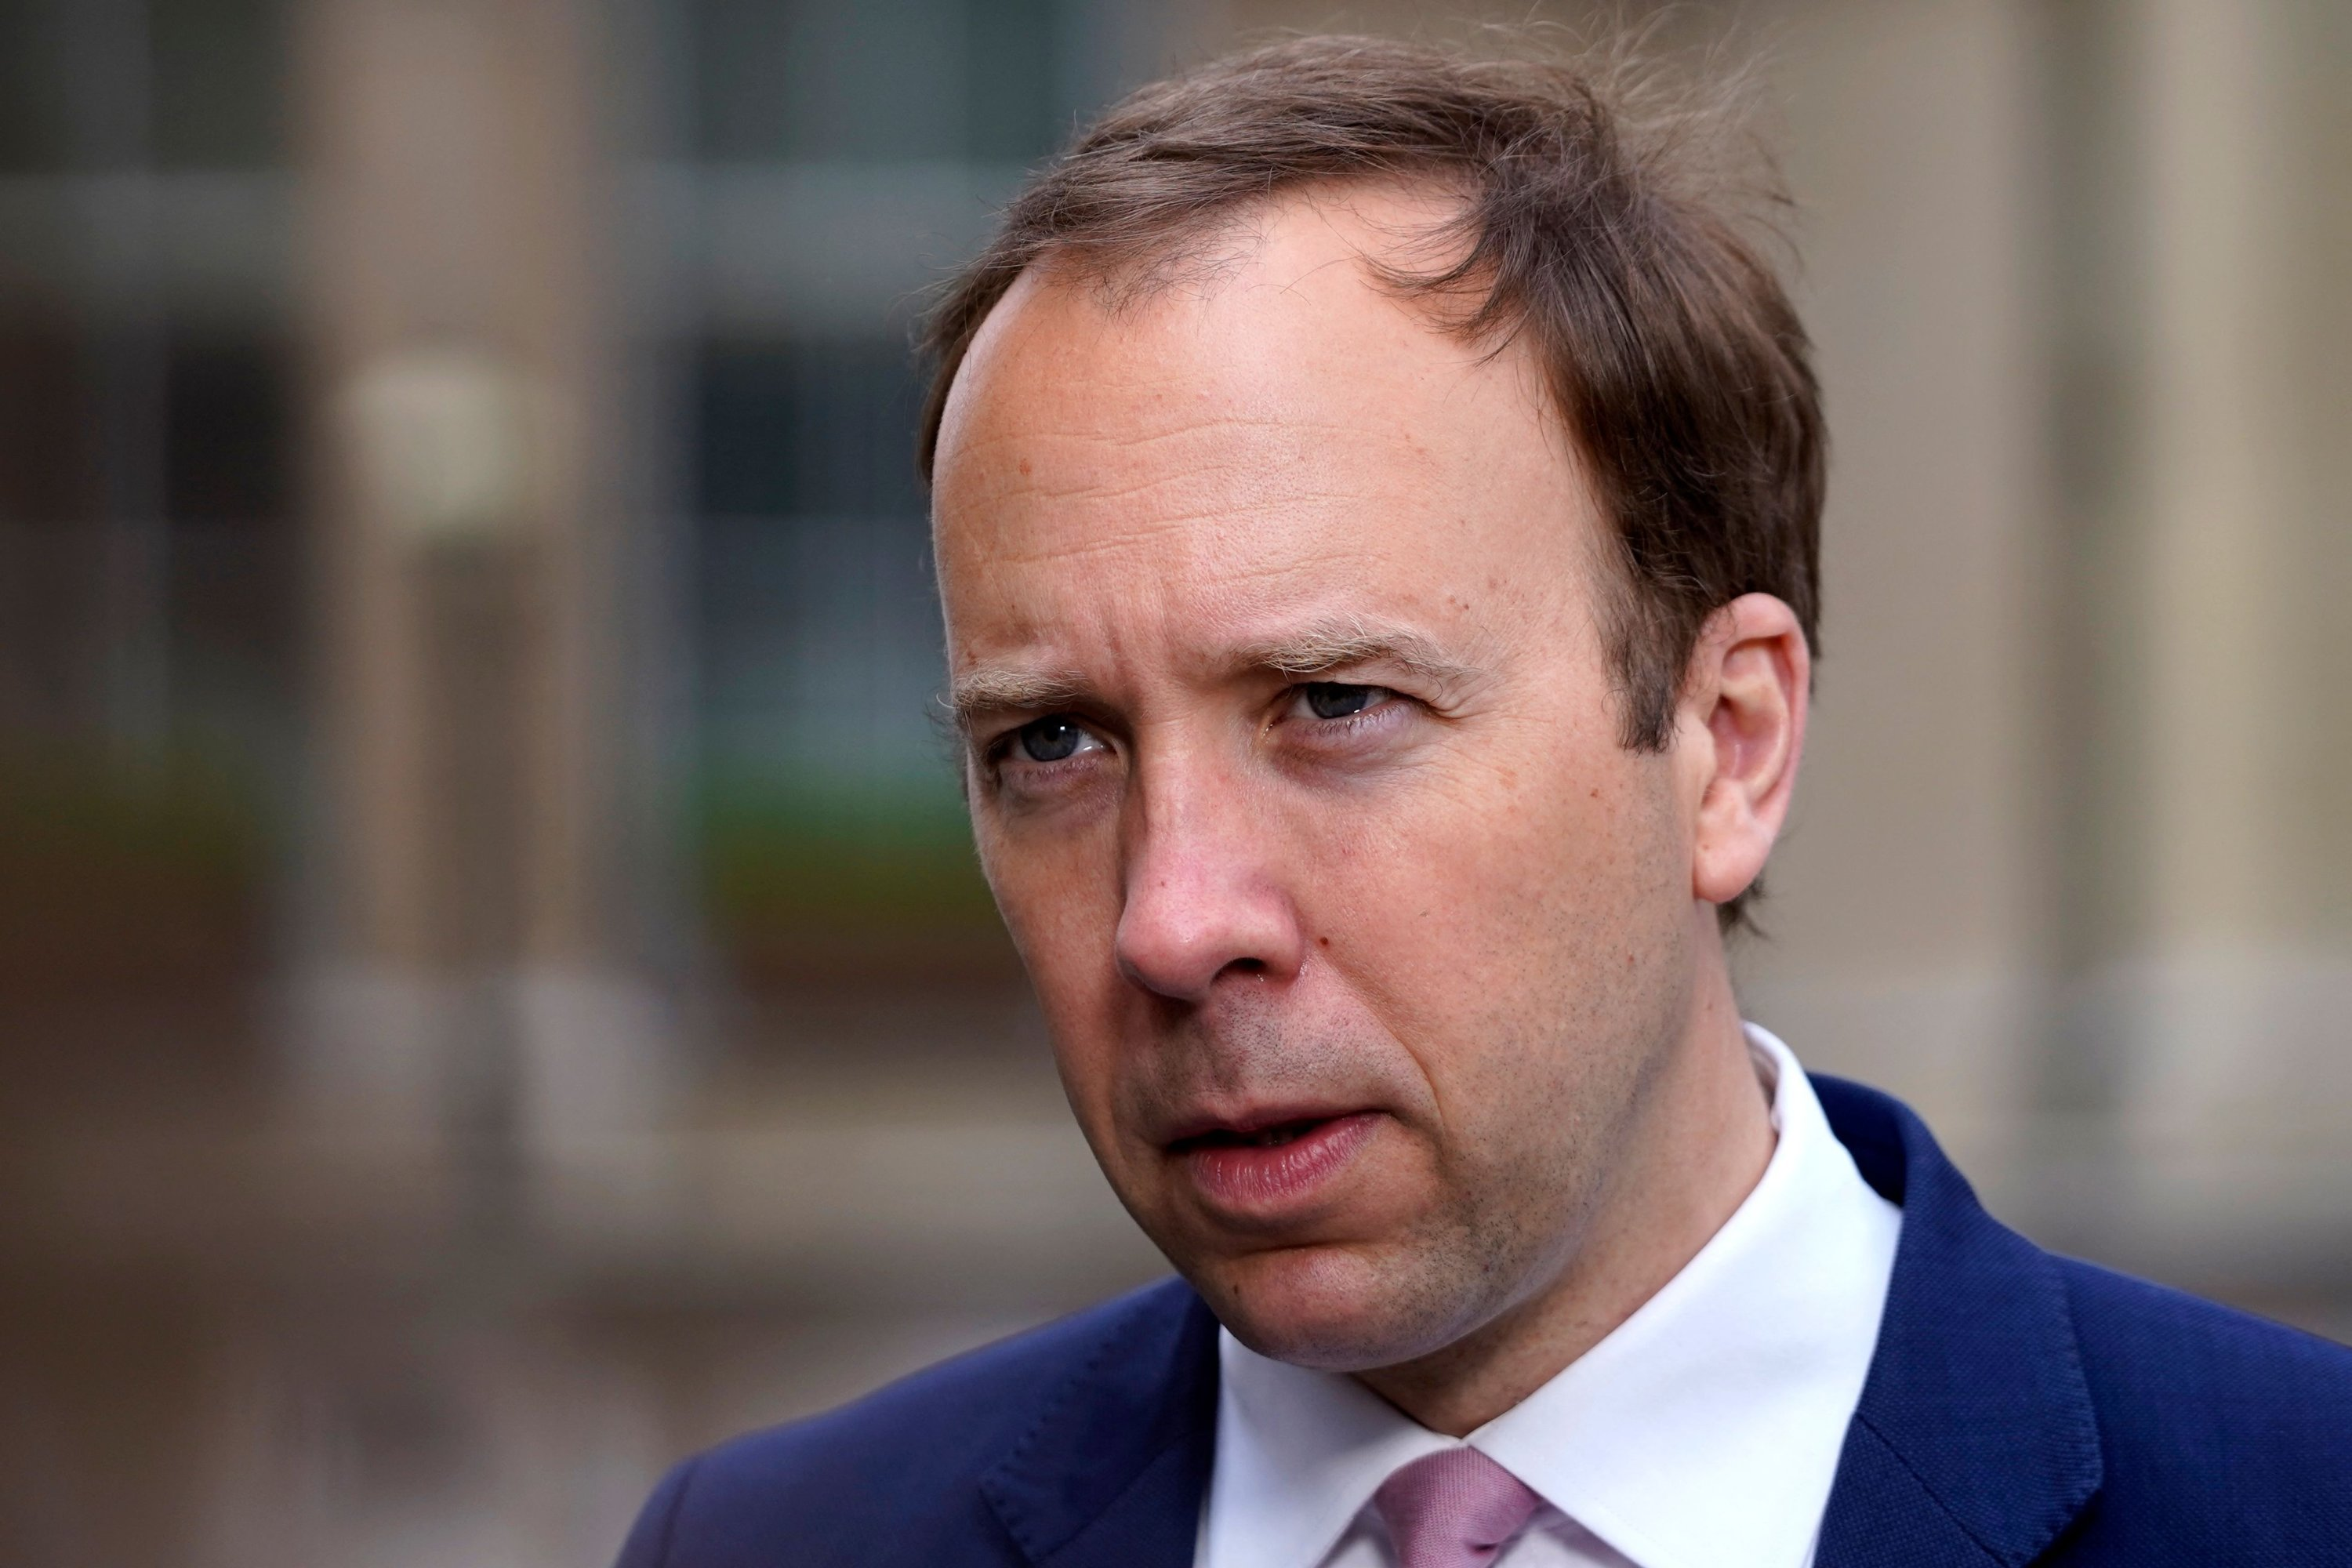 Britain's Health Secretary Matt Hancock gives a media interview as he arrives at the BBC to appear on the political program The Andrew Marr Show, in central London, Britain, May 16, 2021. (AFP)